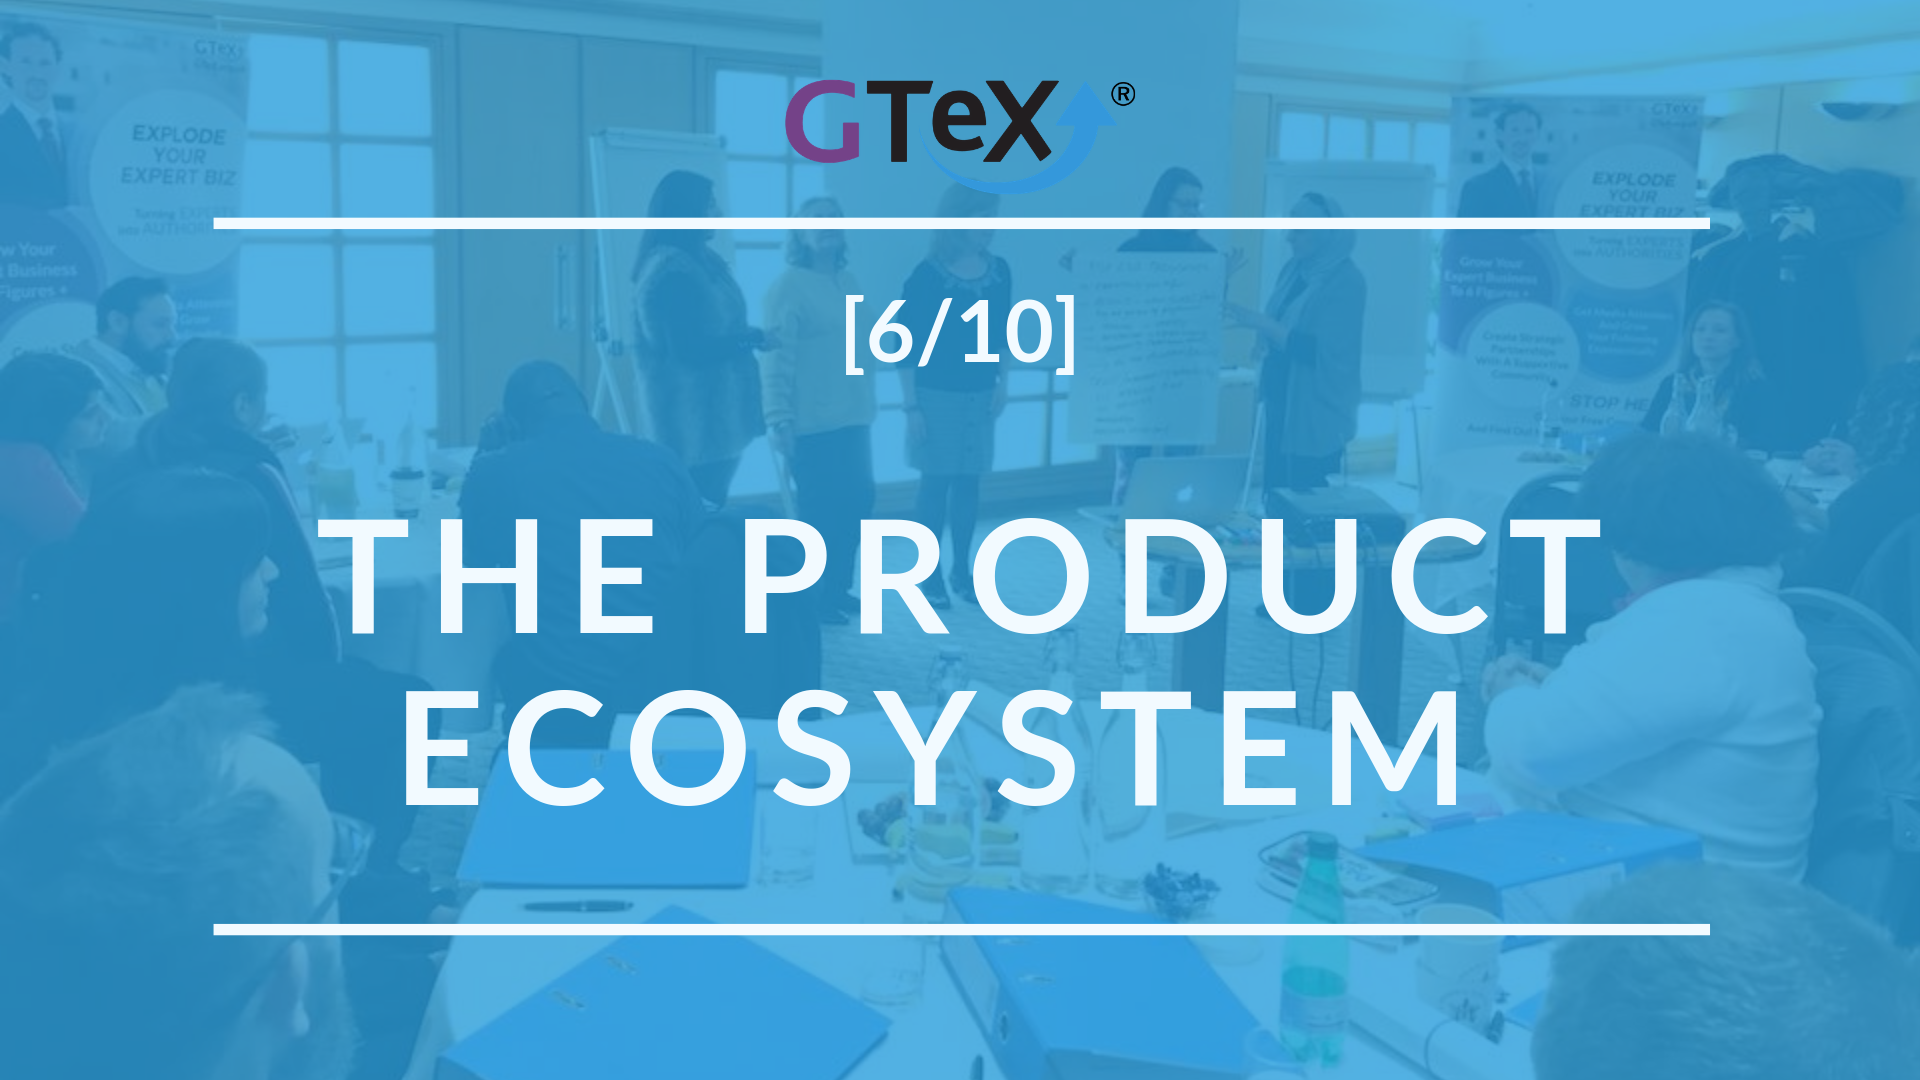 [6/10] THE PRODUCT ECOSYSTEM